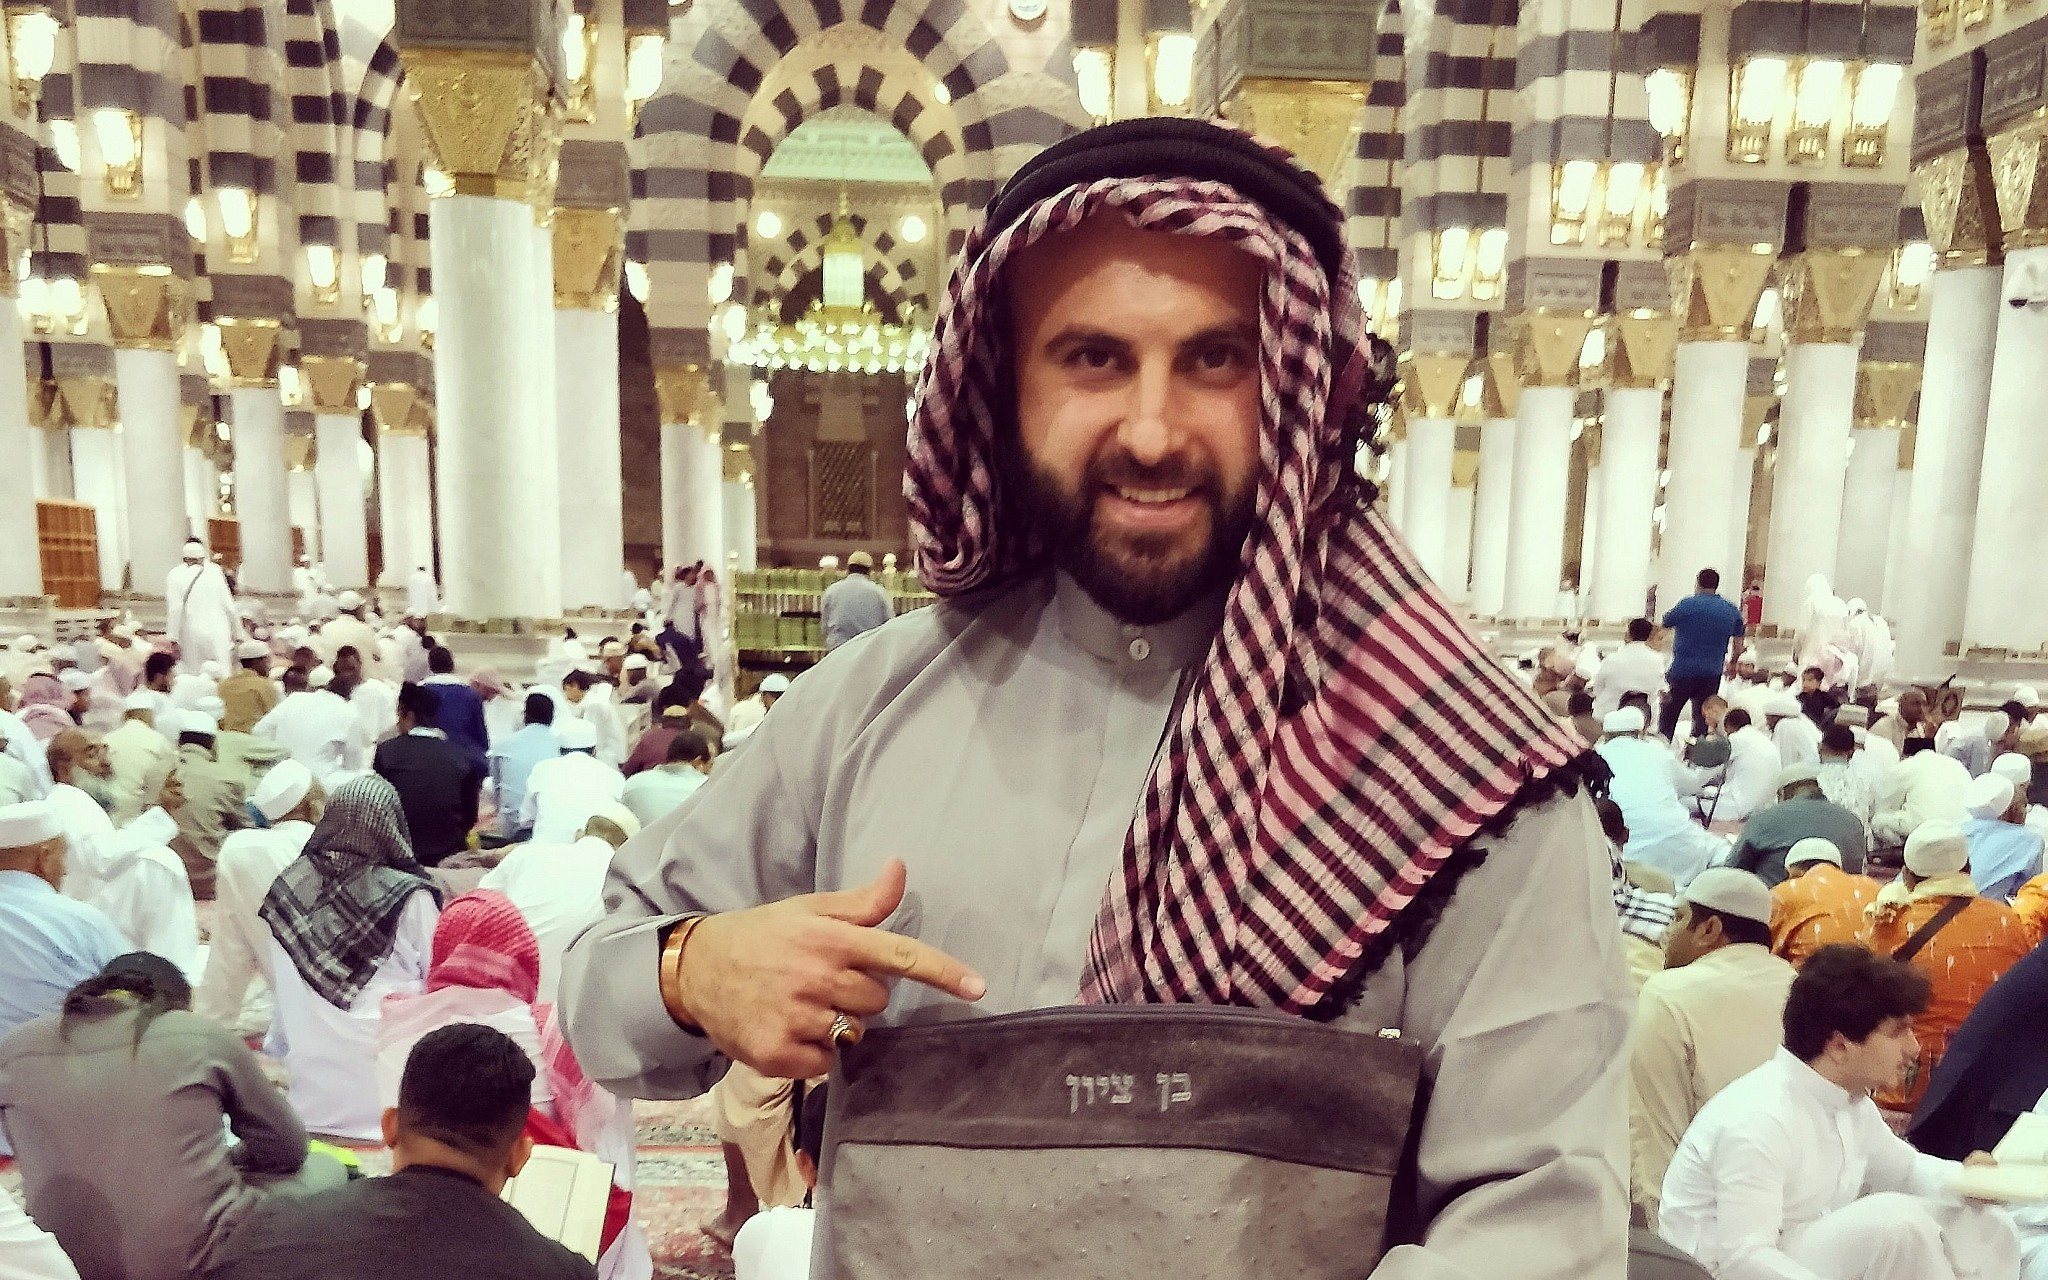 medina muslim Muhammad declared mecca as the holiest site in islam, ordaining it as the center of muslim pilgrimage, one of the faith's five pillars despite his conquest, however, muhammad chose to return to medina, leaving behind attab bin usaid to govern the city.